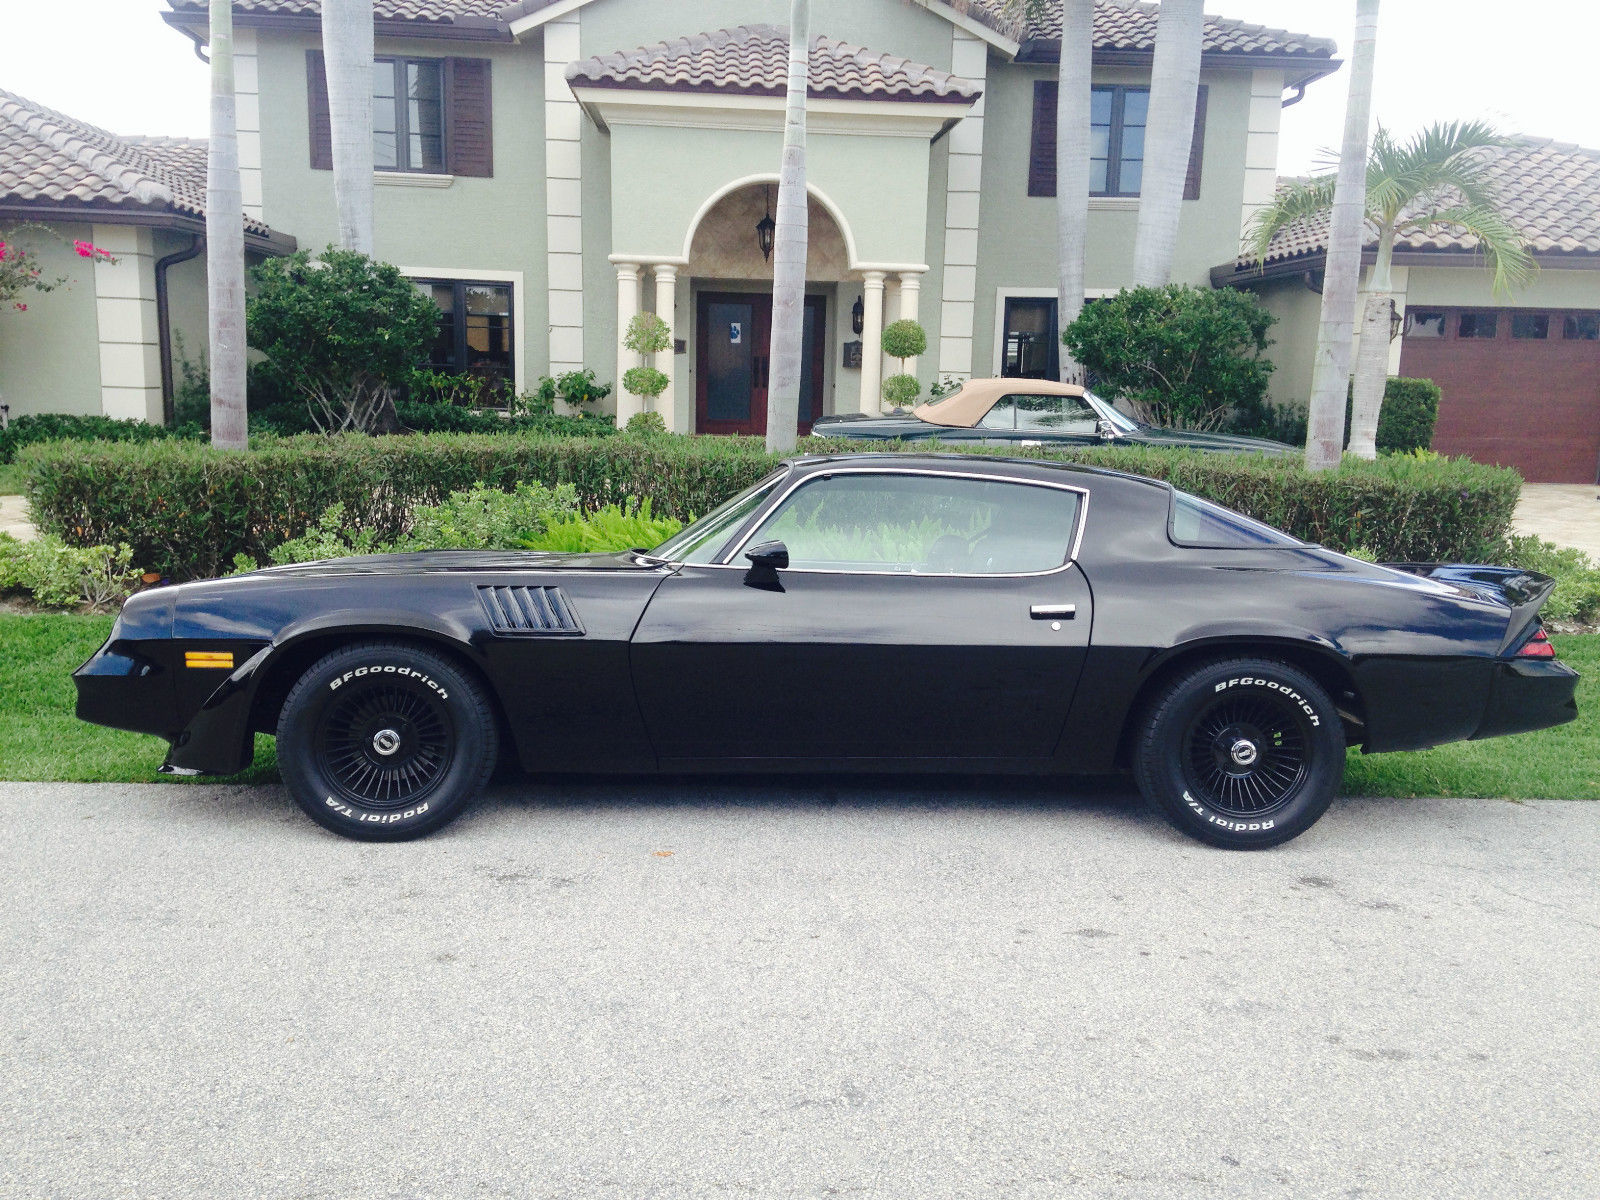 79 camaro z28 numbers matching documented loaded classic chevrolet camaro 1979 for sale. Black Bedroom Furniture Sets. Home Design Ideas